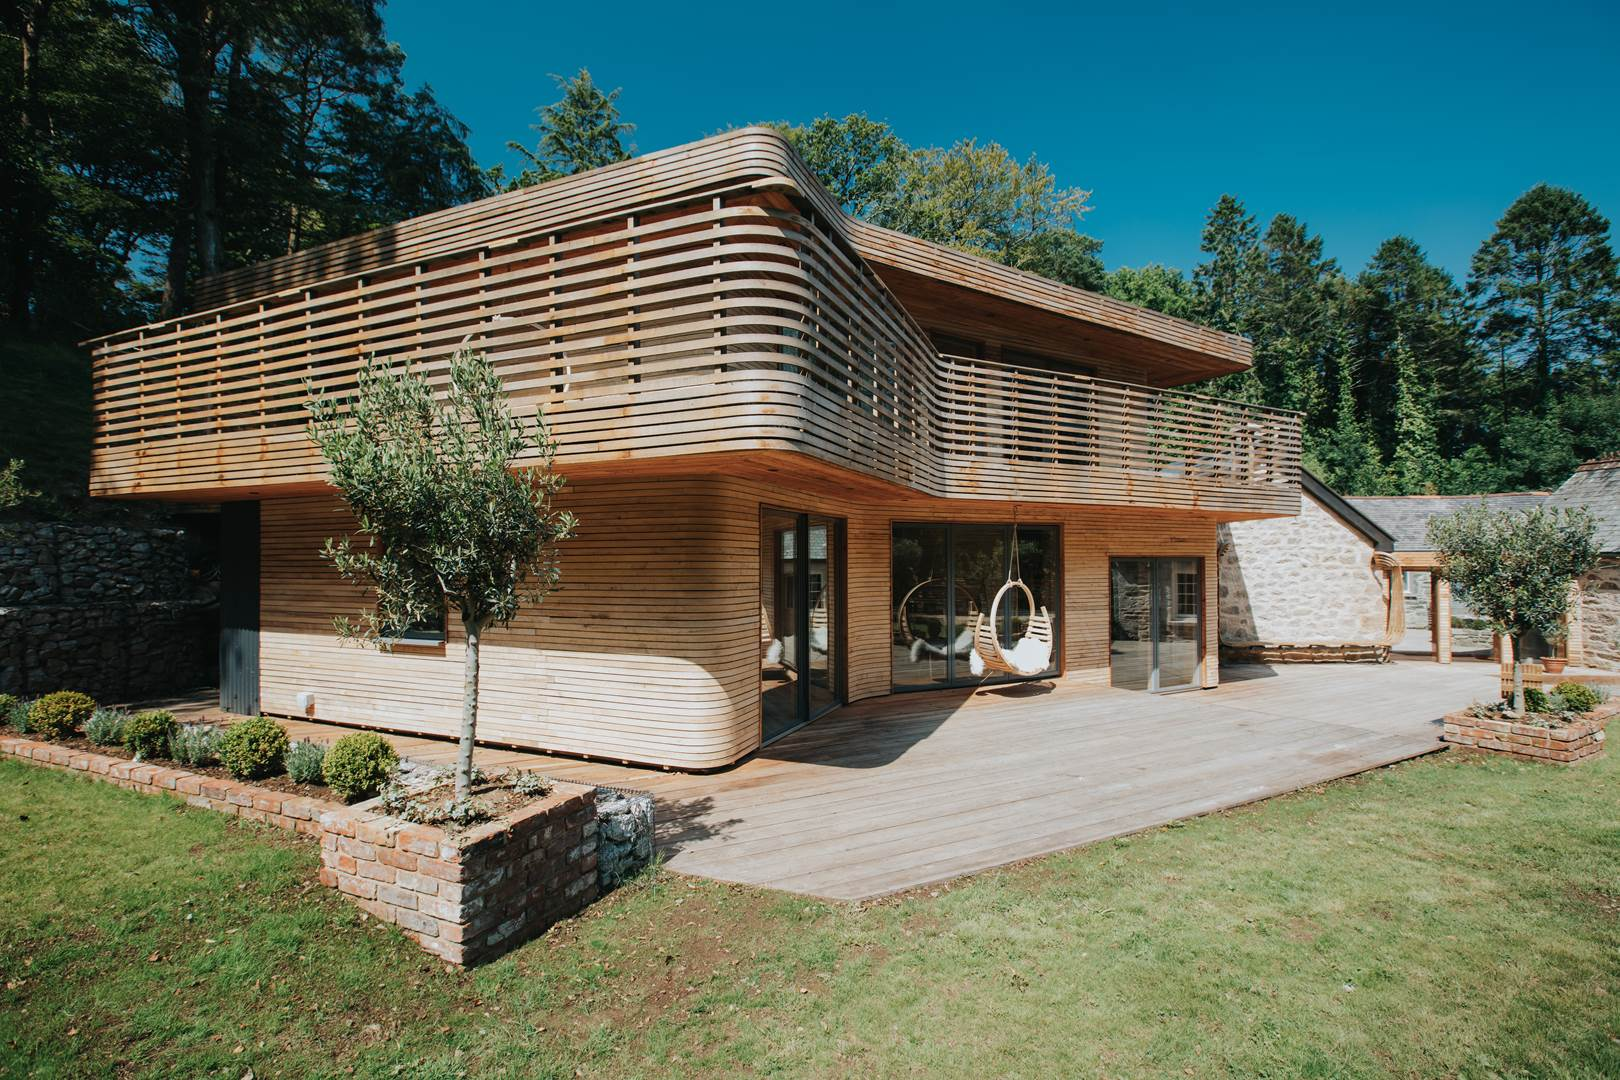 081-tom-raffield-grand-designs-house (Copy)